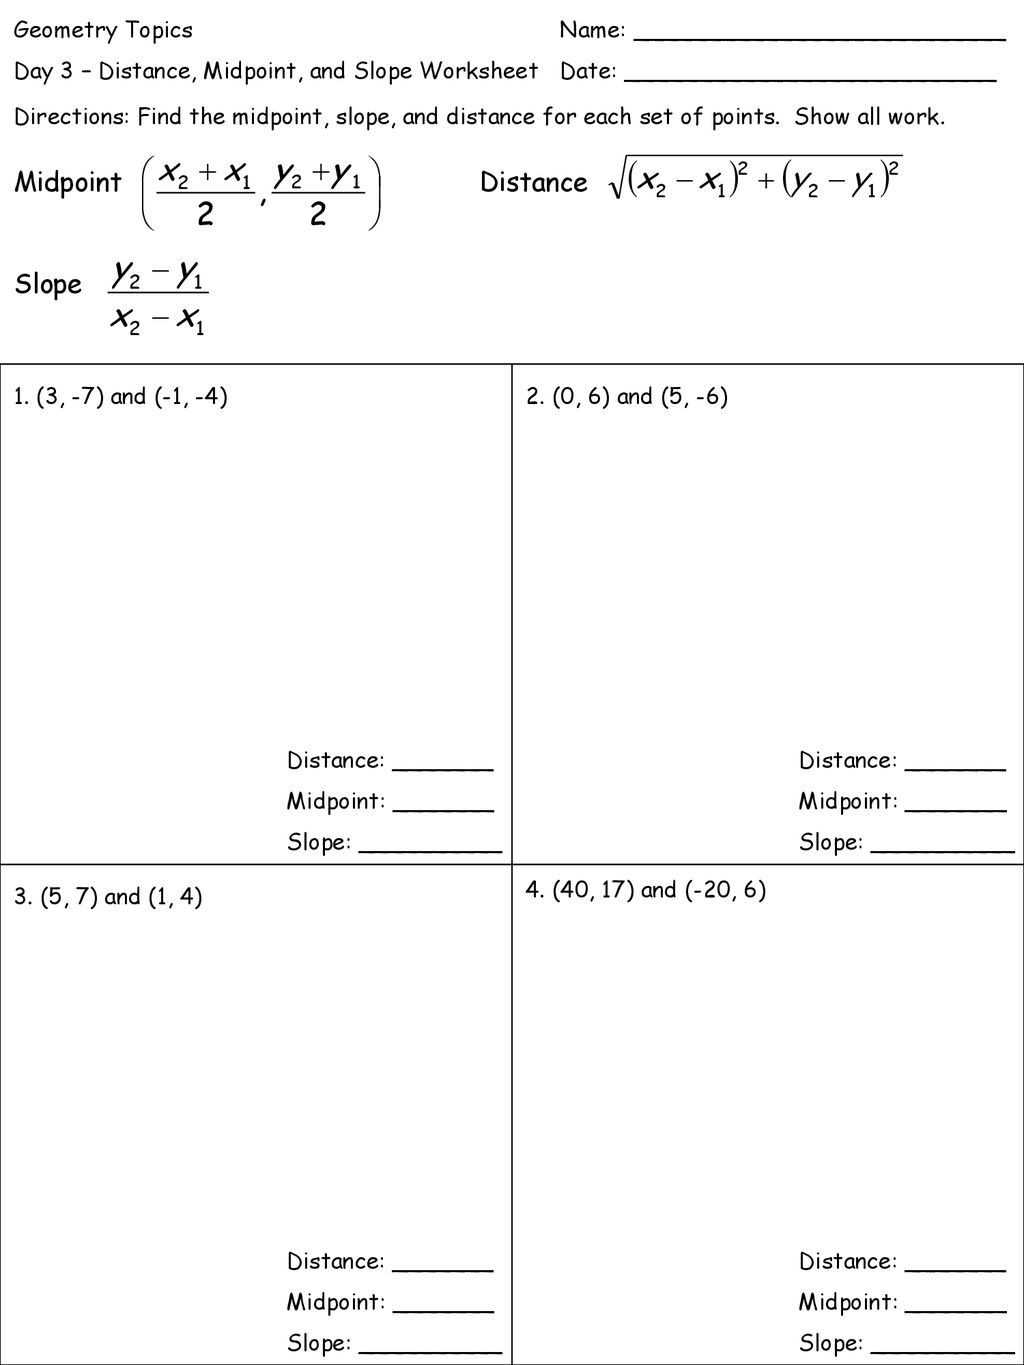 Midpoint and Distance Worksheet Geometry topics Name Ppt